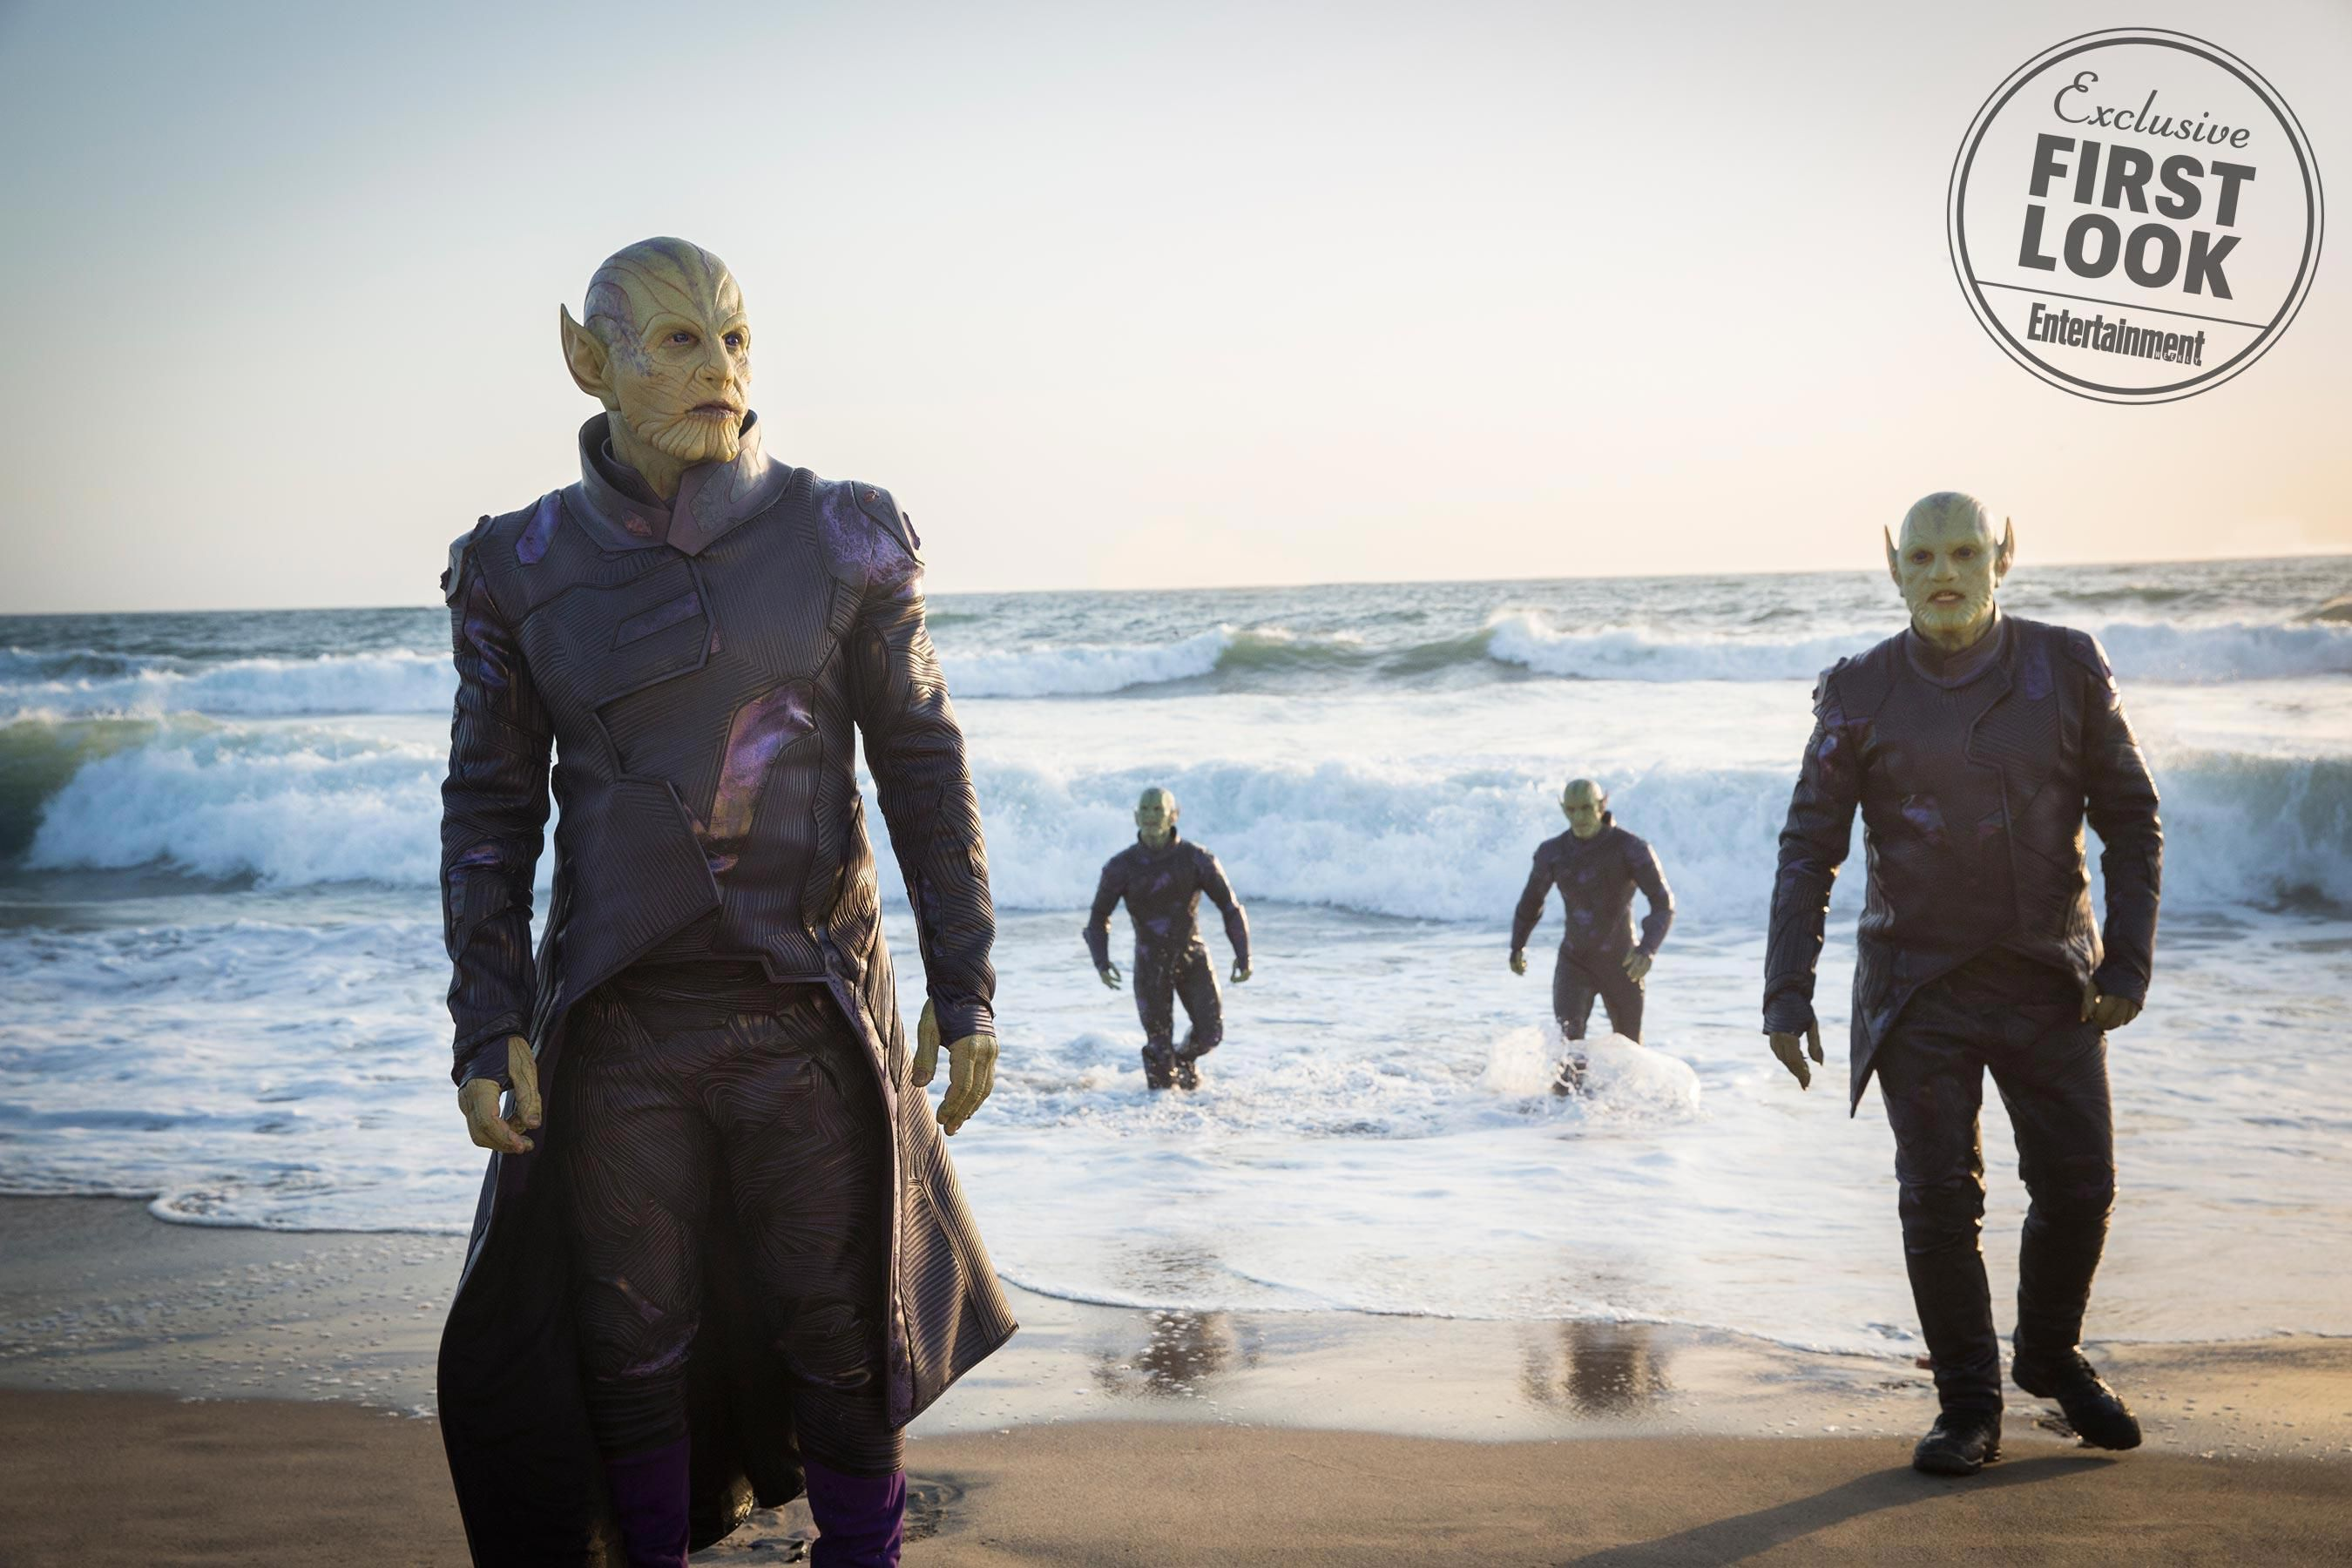 Skrulls on beach